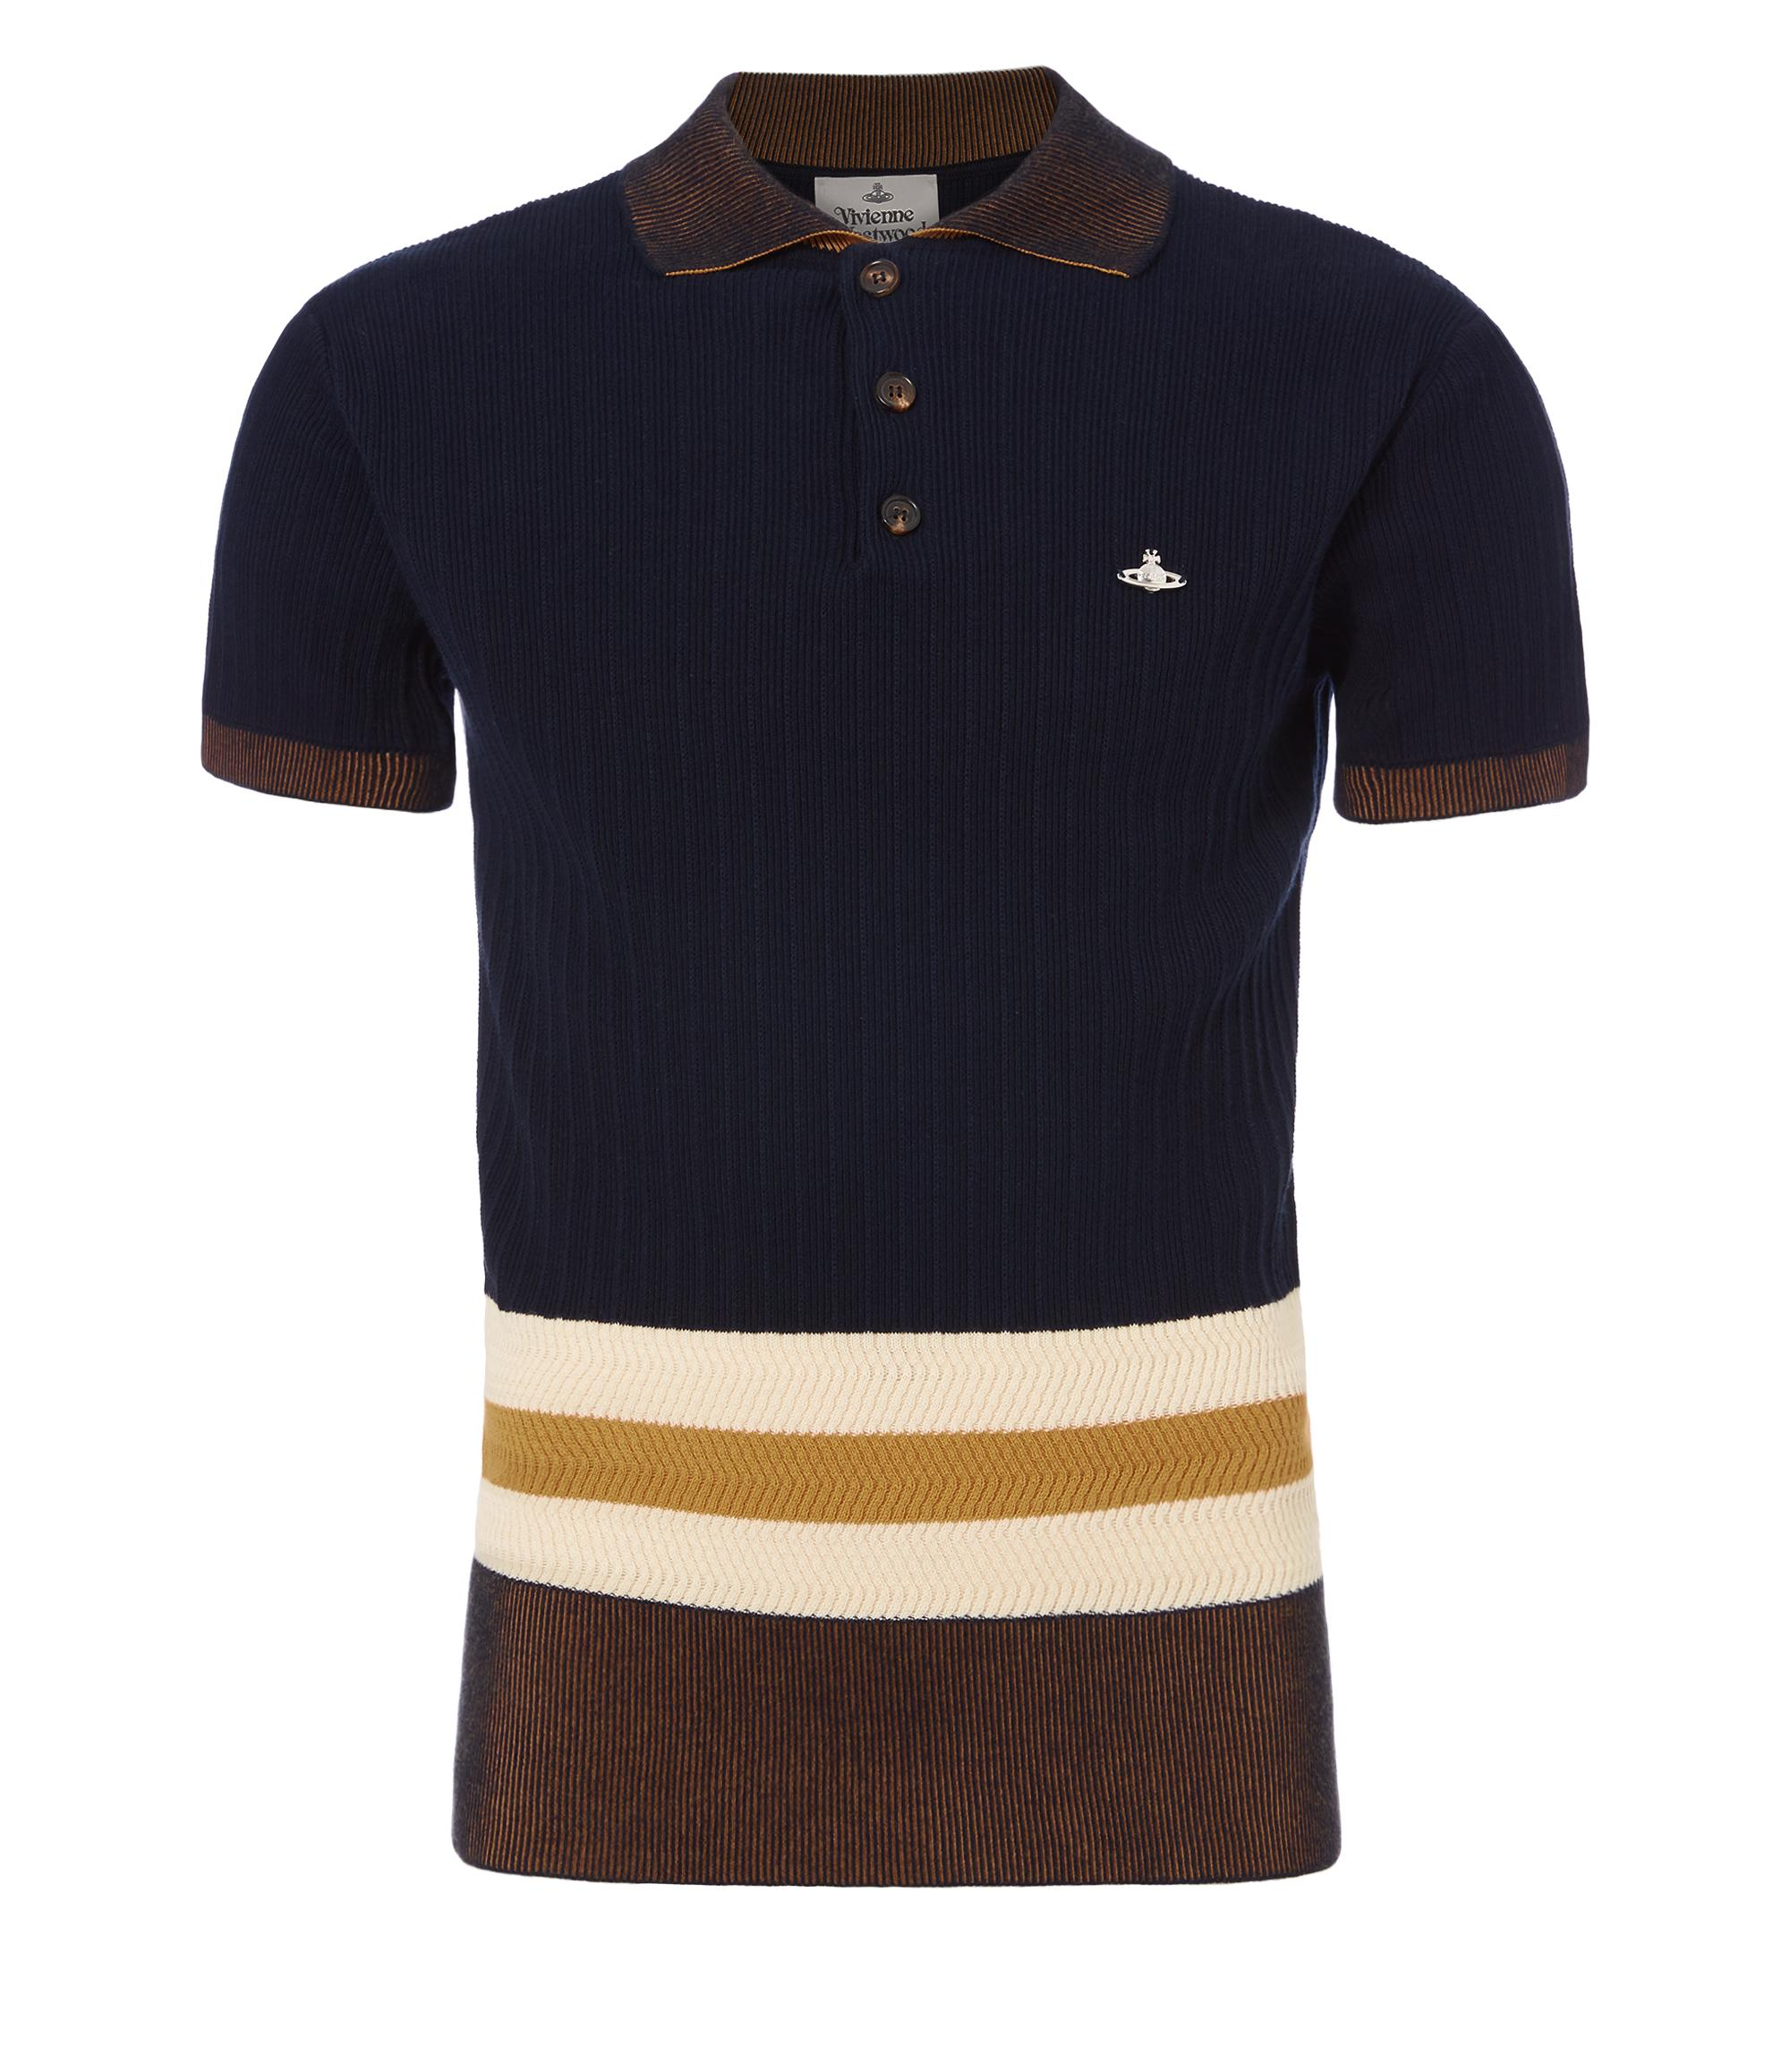 Vivienne Westwood Ribbed Colour Block Polo Shirt In Navy